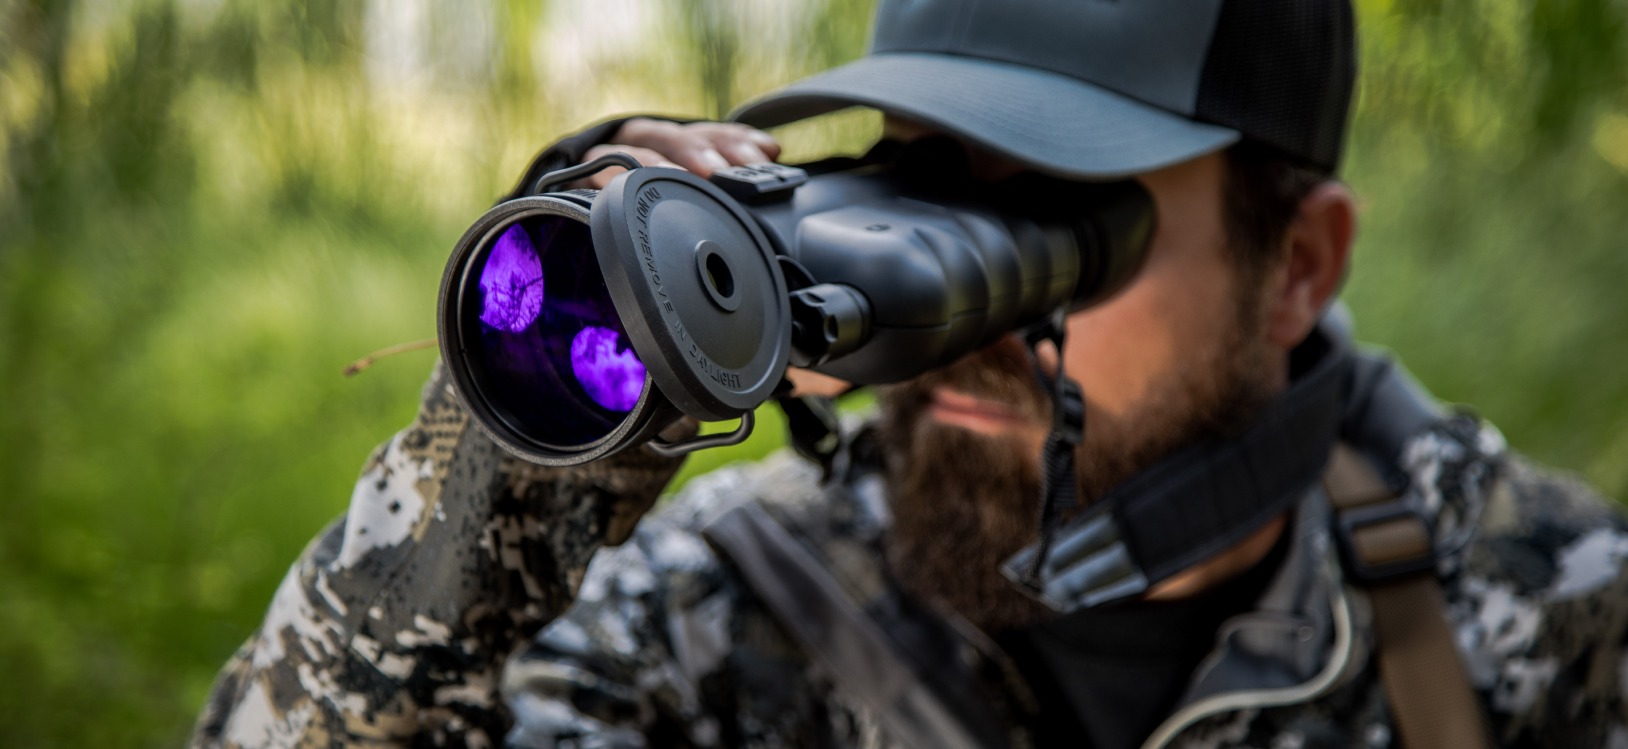 AGM Global Weekly News: Giveaways, Instant Rebates, and the New ASP Thermal Monocular